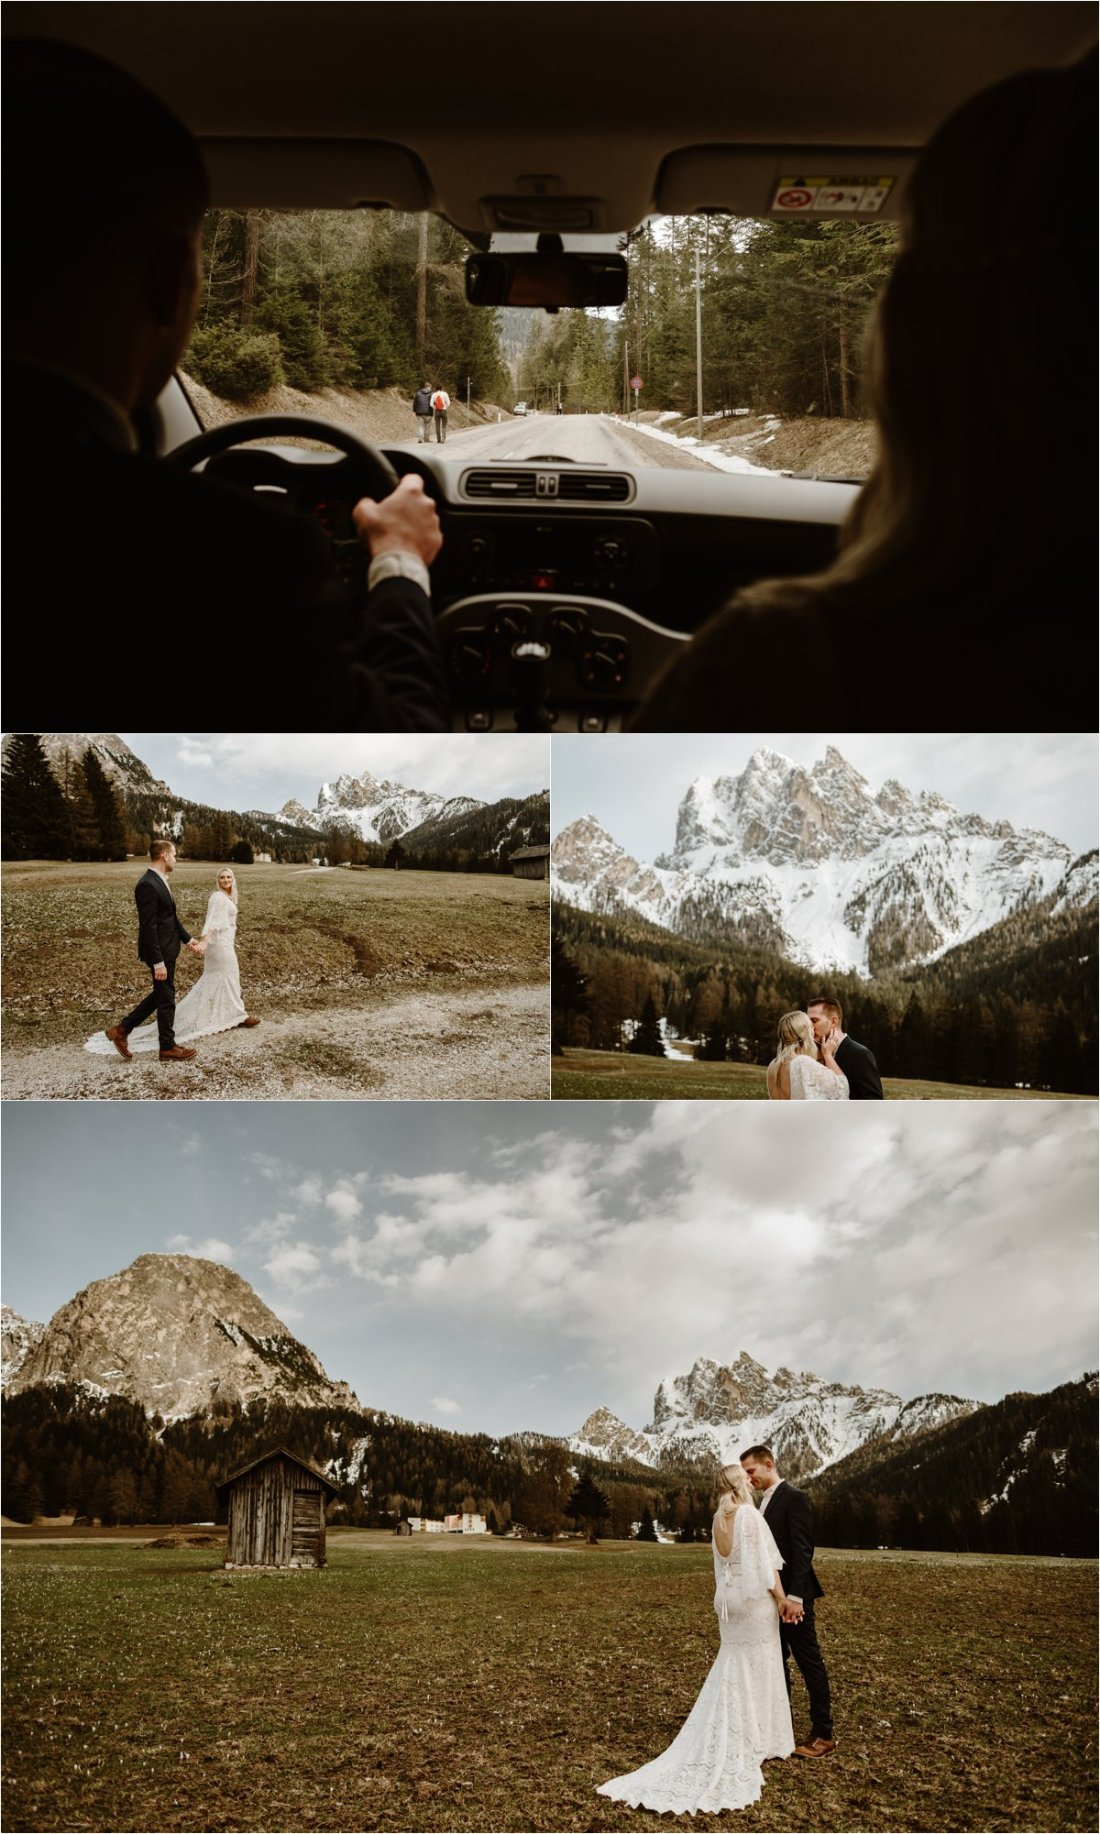 Erika & Nathan explore the mountain meadows of the Italian Dolomites. Photos by Wild Connections Photography - Alps & Dolomites Elopement Photographer